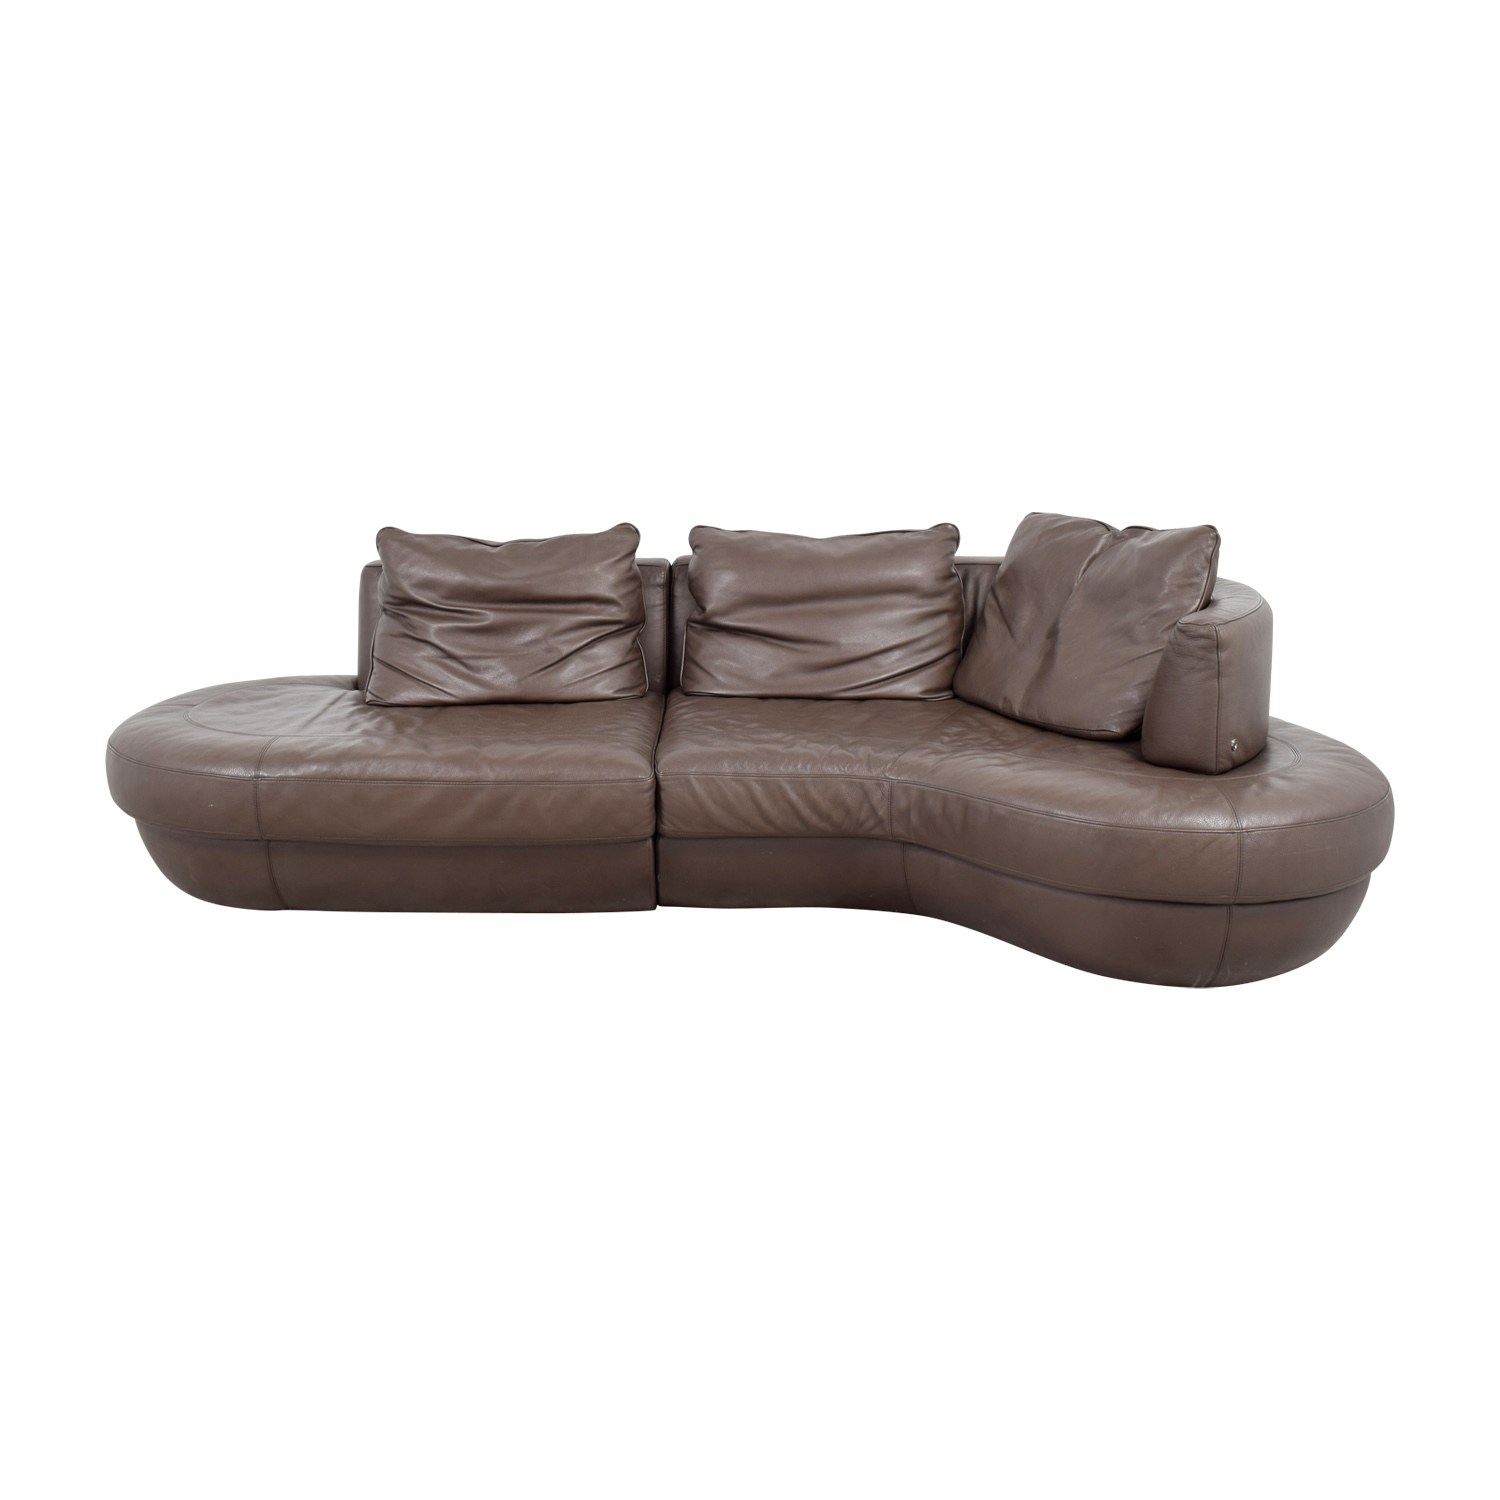 editions sectional grain natuzzi sofas sectionals adriano original and by top brands furniture leather